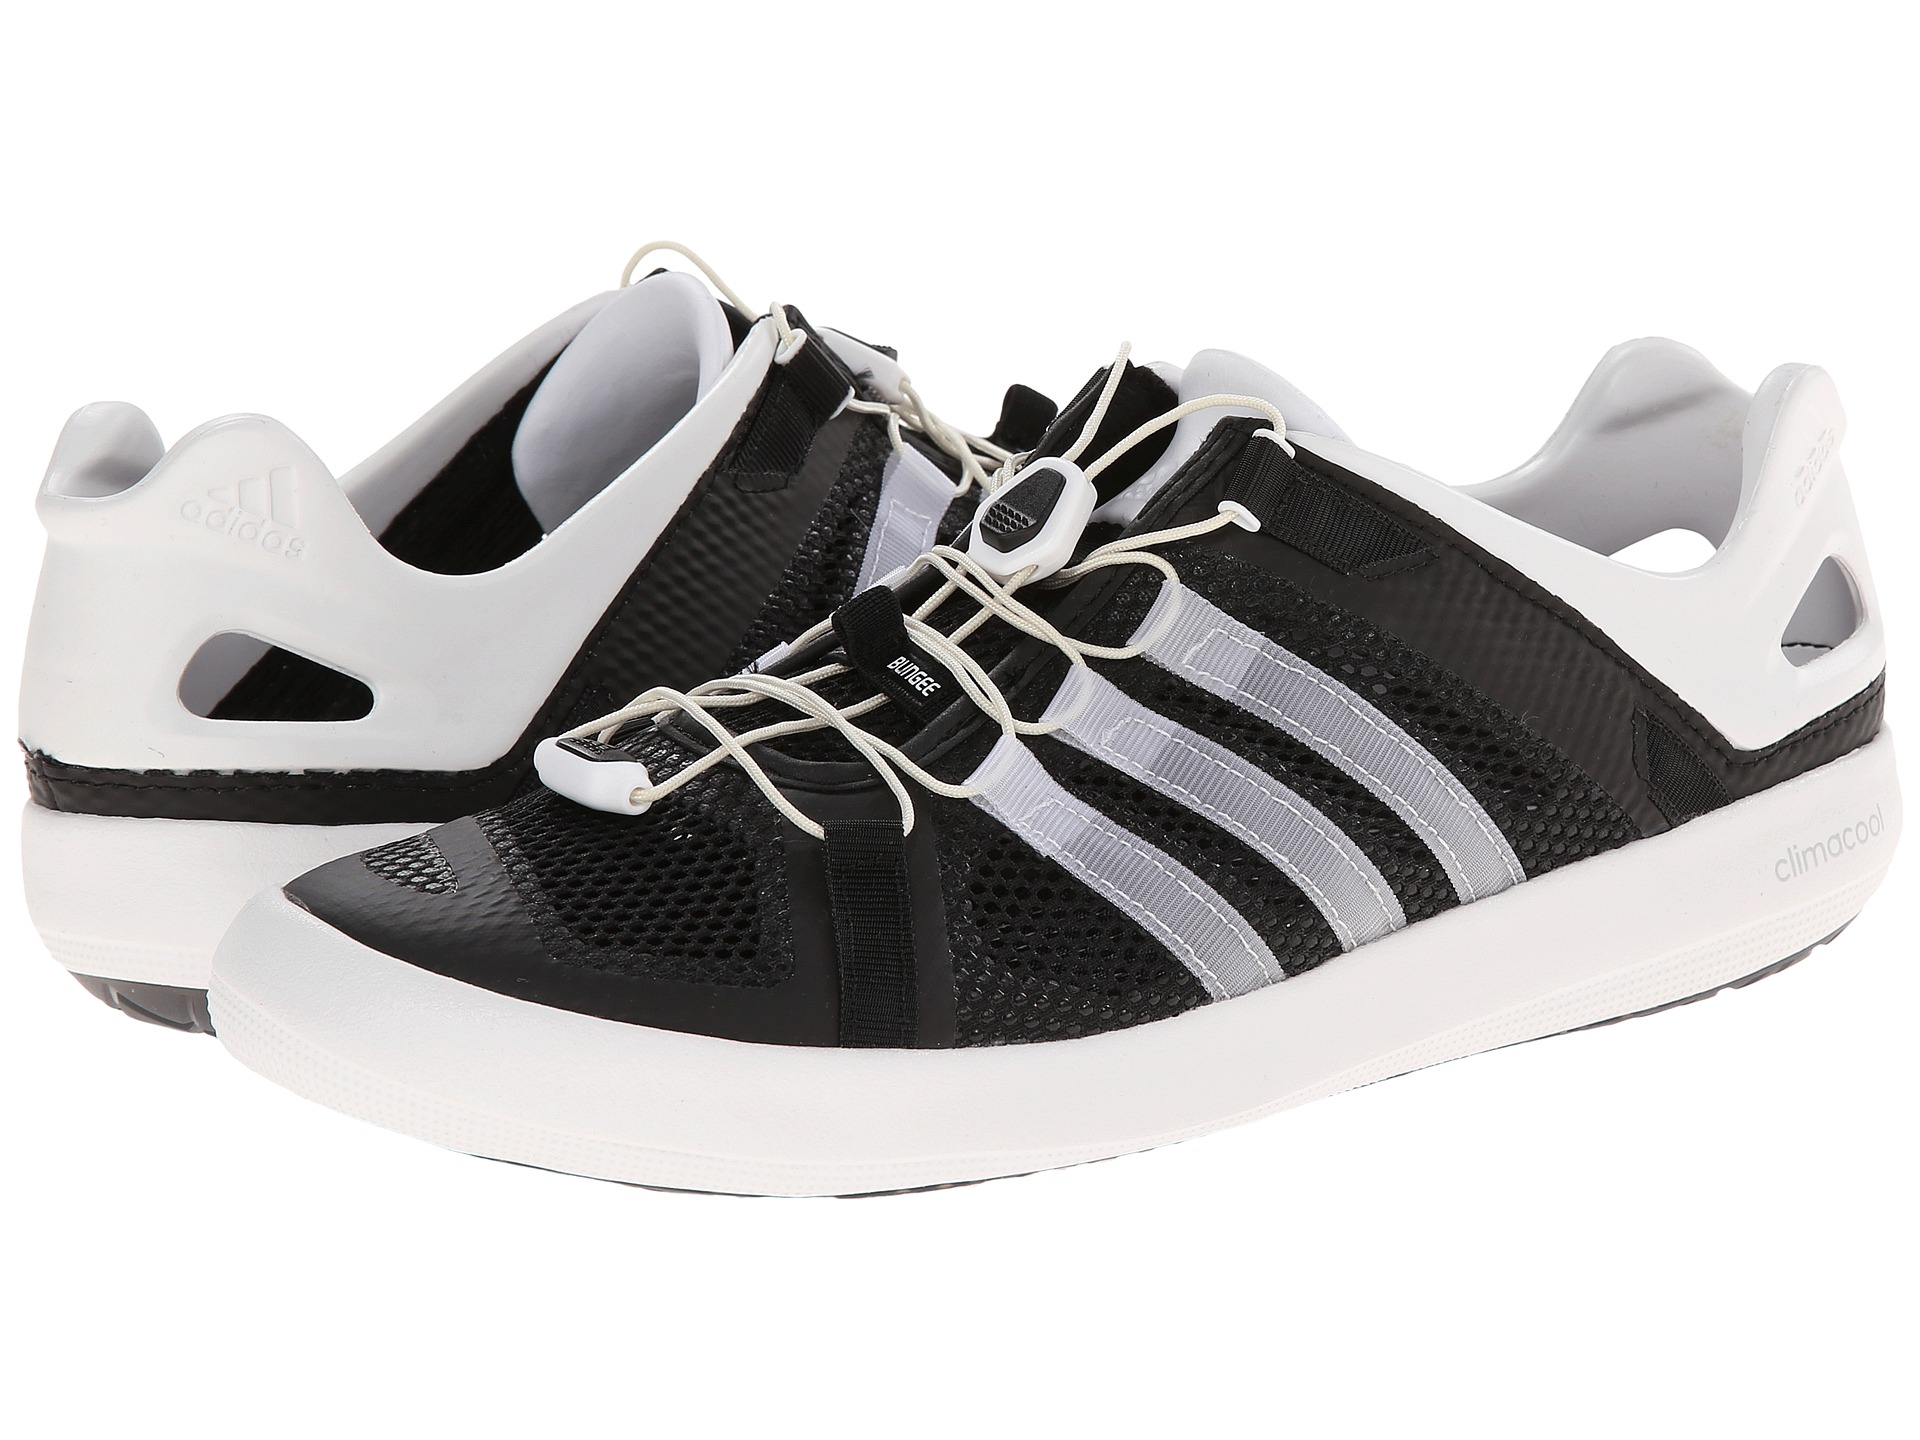 low priced 1ca75 0bbe7 adidas Outdoor Climacool® Boat Breeze